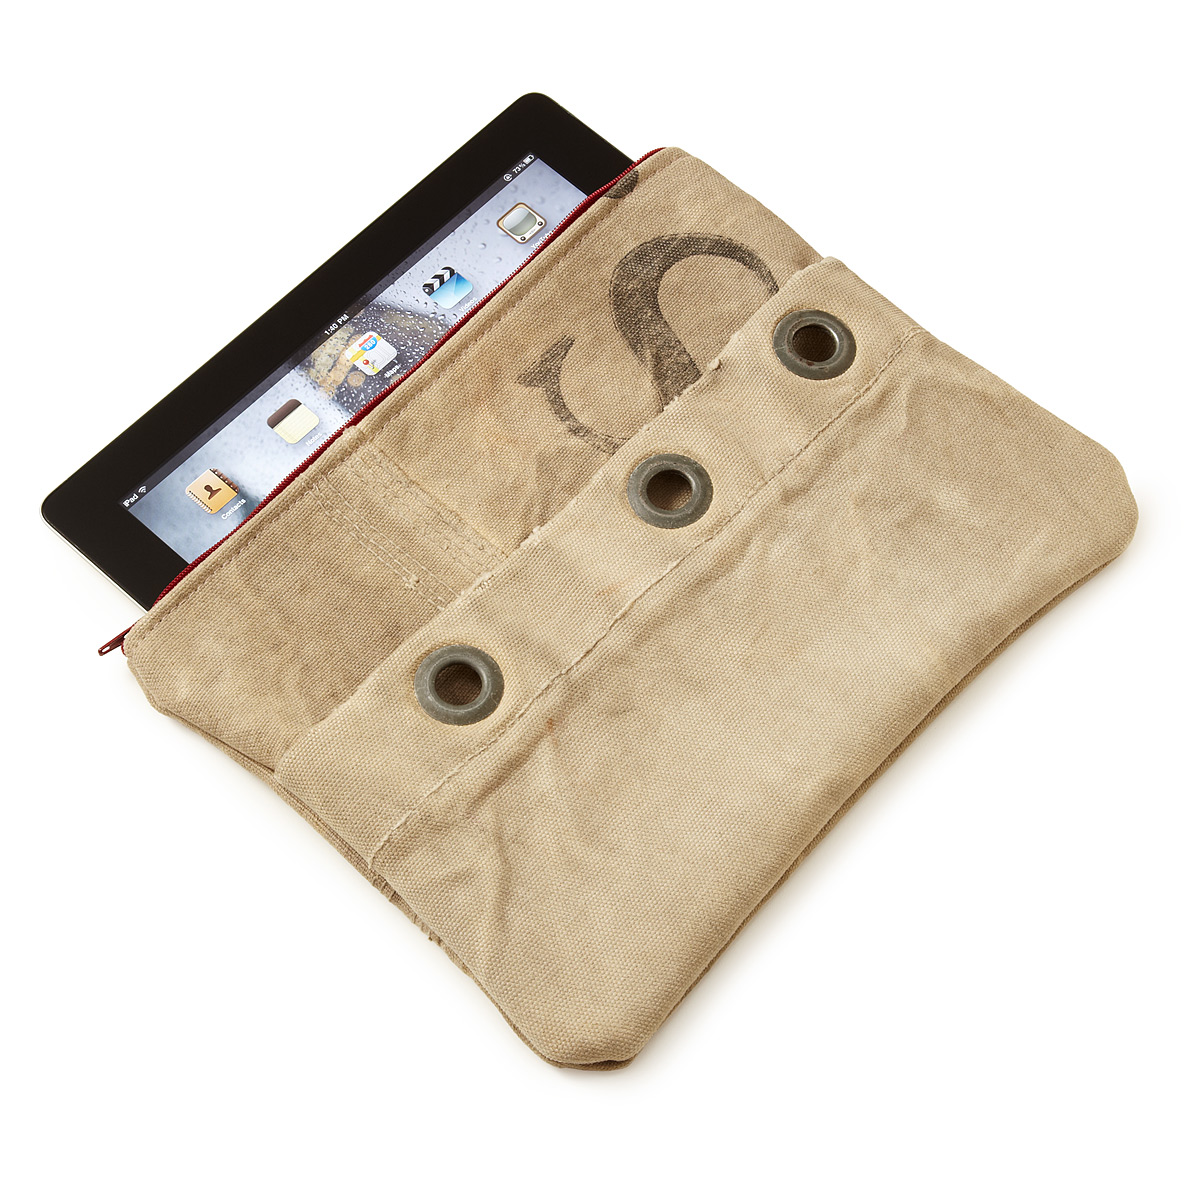 An upcycled iPad case salvaged from the snail mail era.